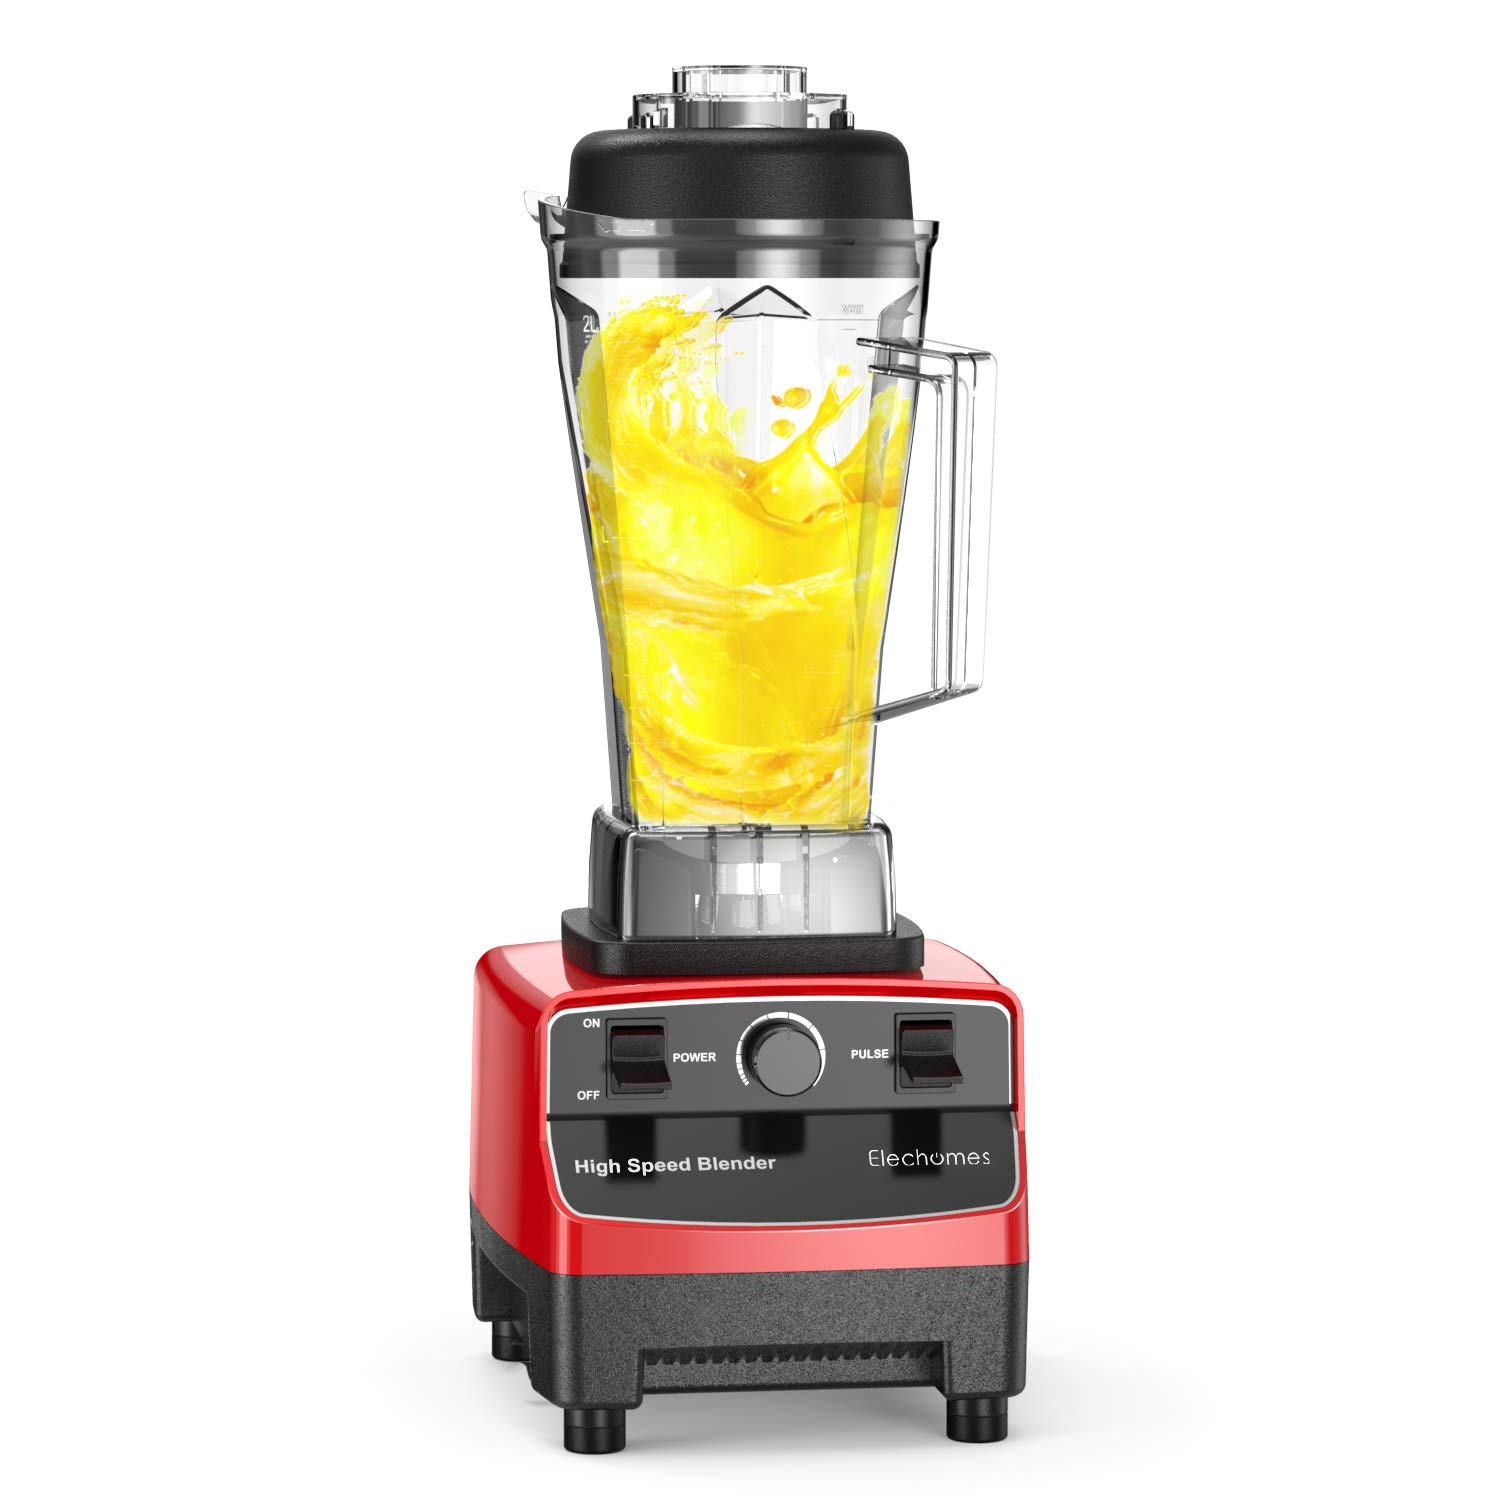 1200W Commercial Blender - Elechomes High-Speed Blender, Professional Kitchen Smoothie Blender Maker with BPA-Free Pitcher, Commercial Heavy Duty Food Processer(FDA Certified)